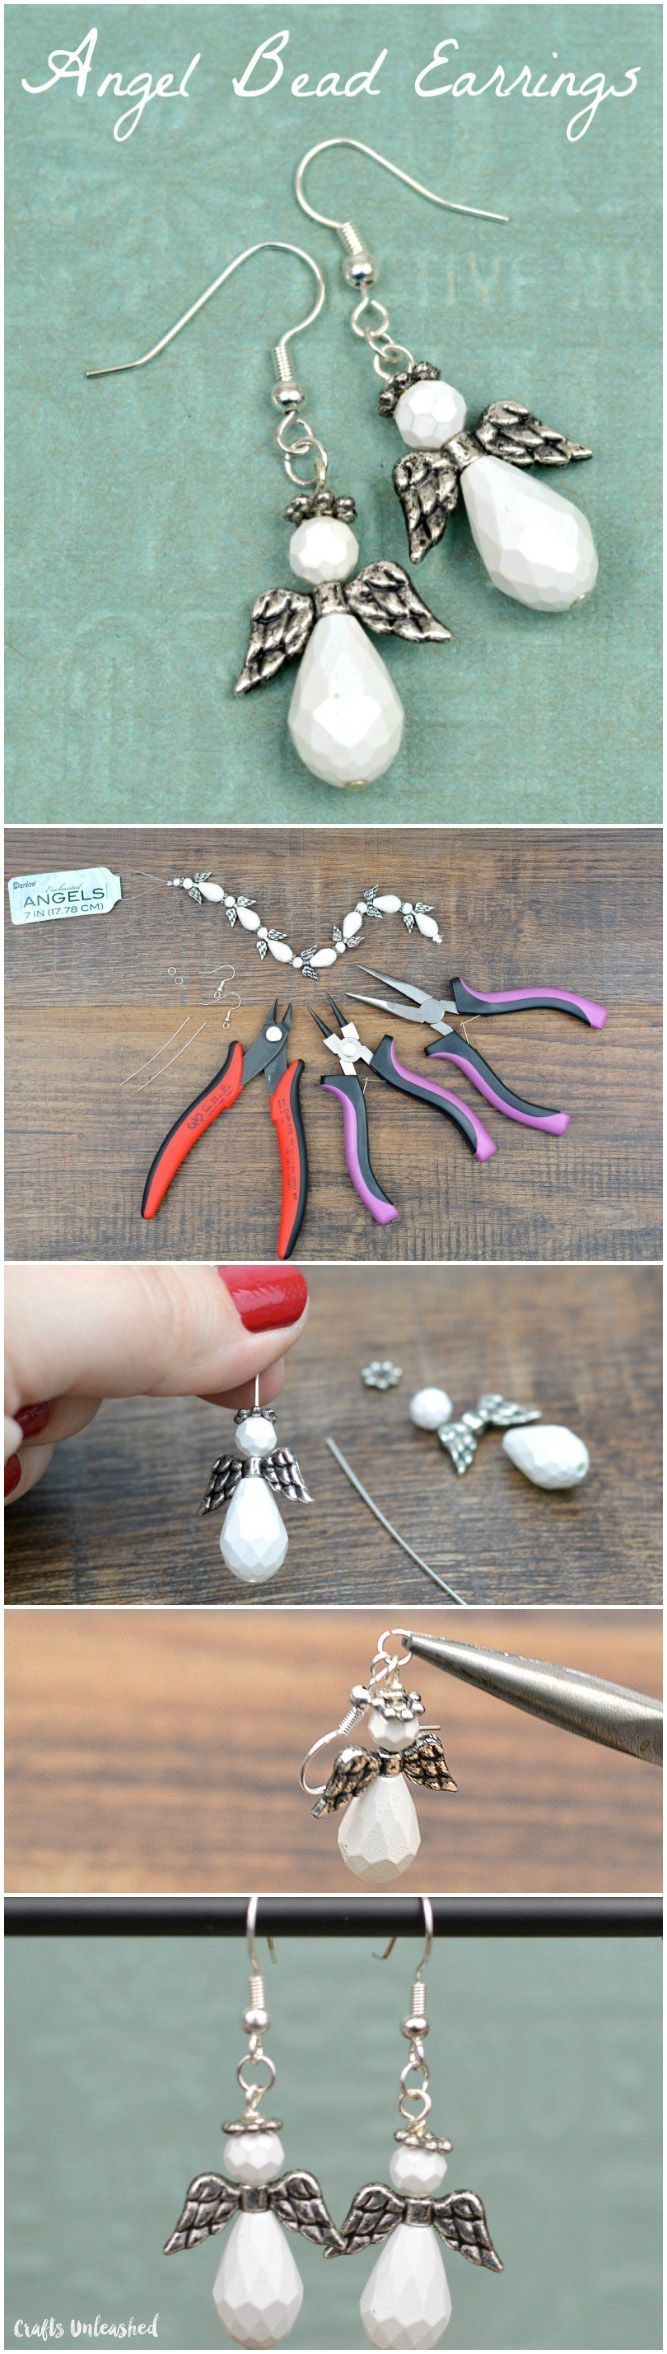 Learn how to make these angel DIY bead earrings with beginner jewelry making techniques. Elegant, handmade jewelry gifts are easier to make than you think.